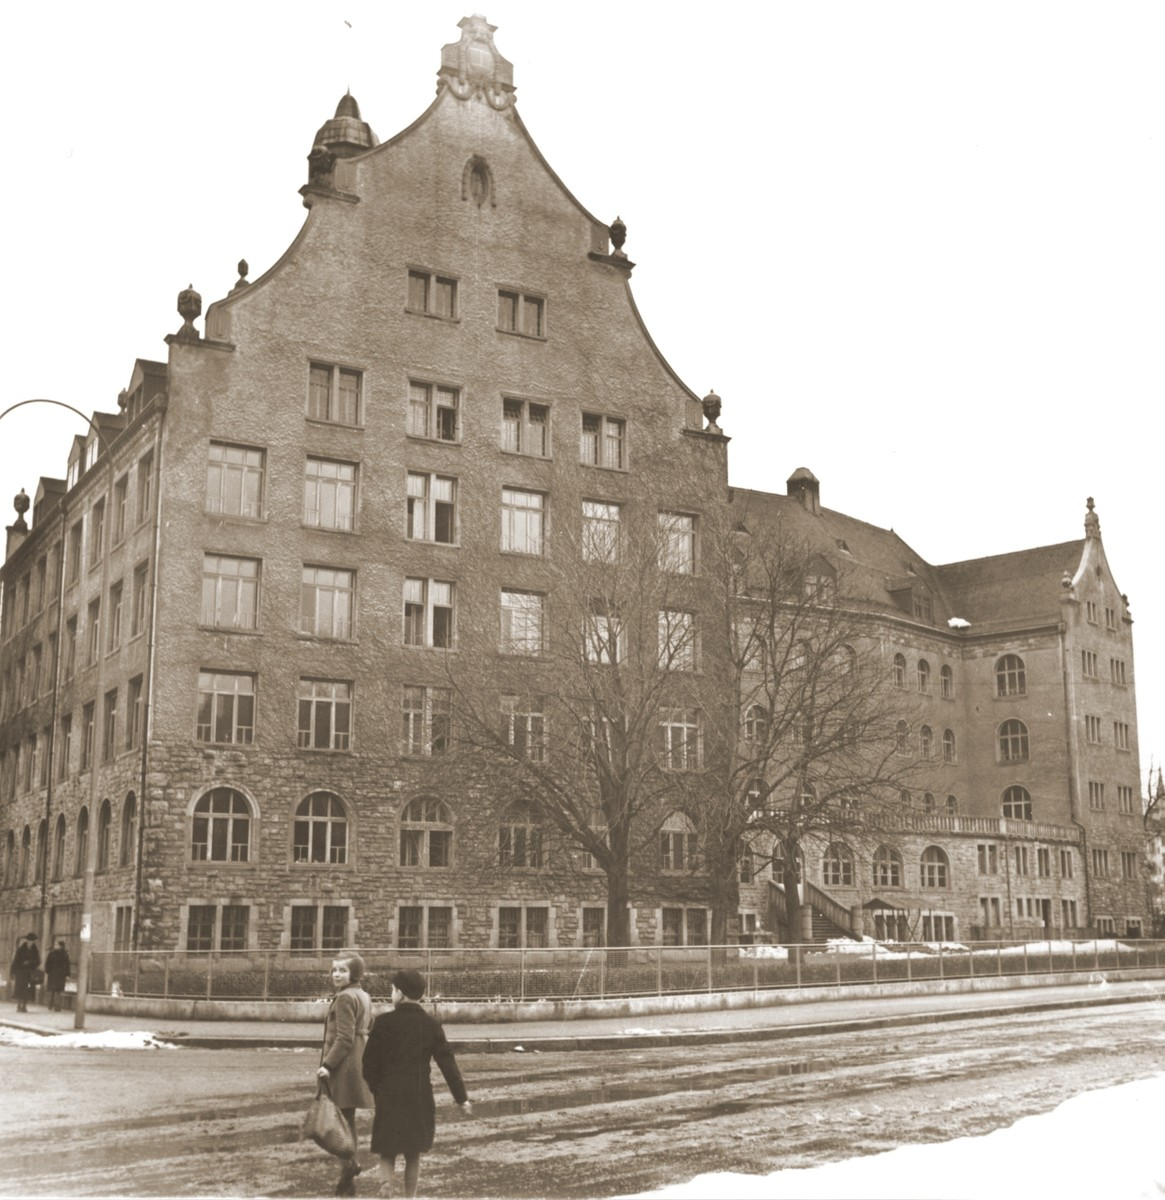 View of the Hadwigschulhaus in St. Gallen that served as a reception center for Jews released from Theresienstadt.